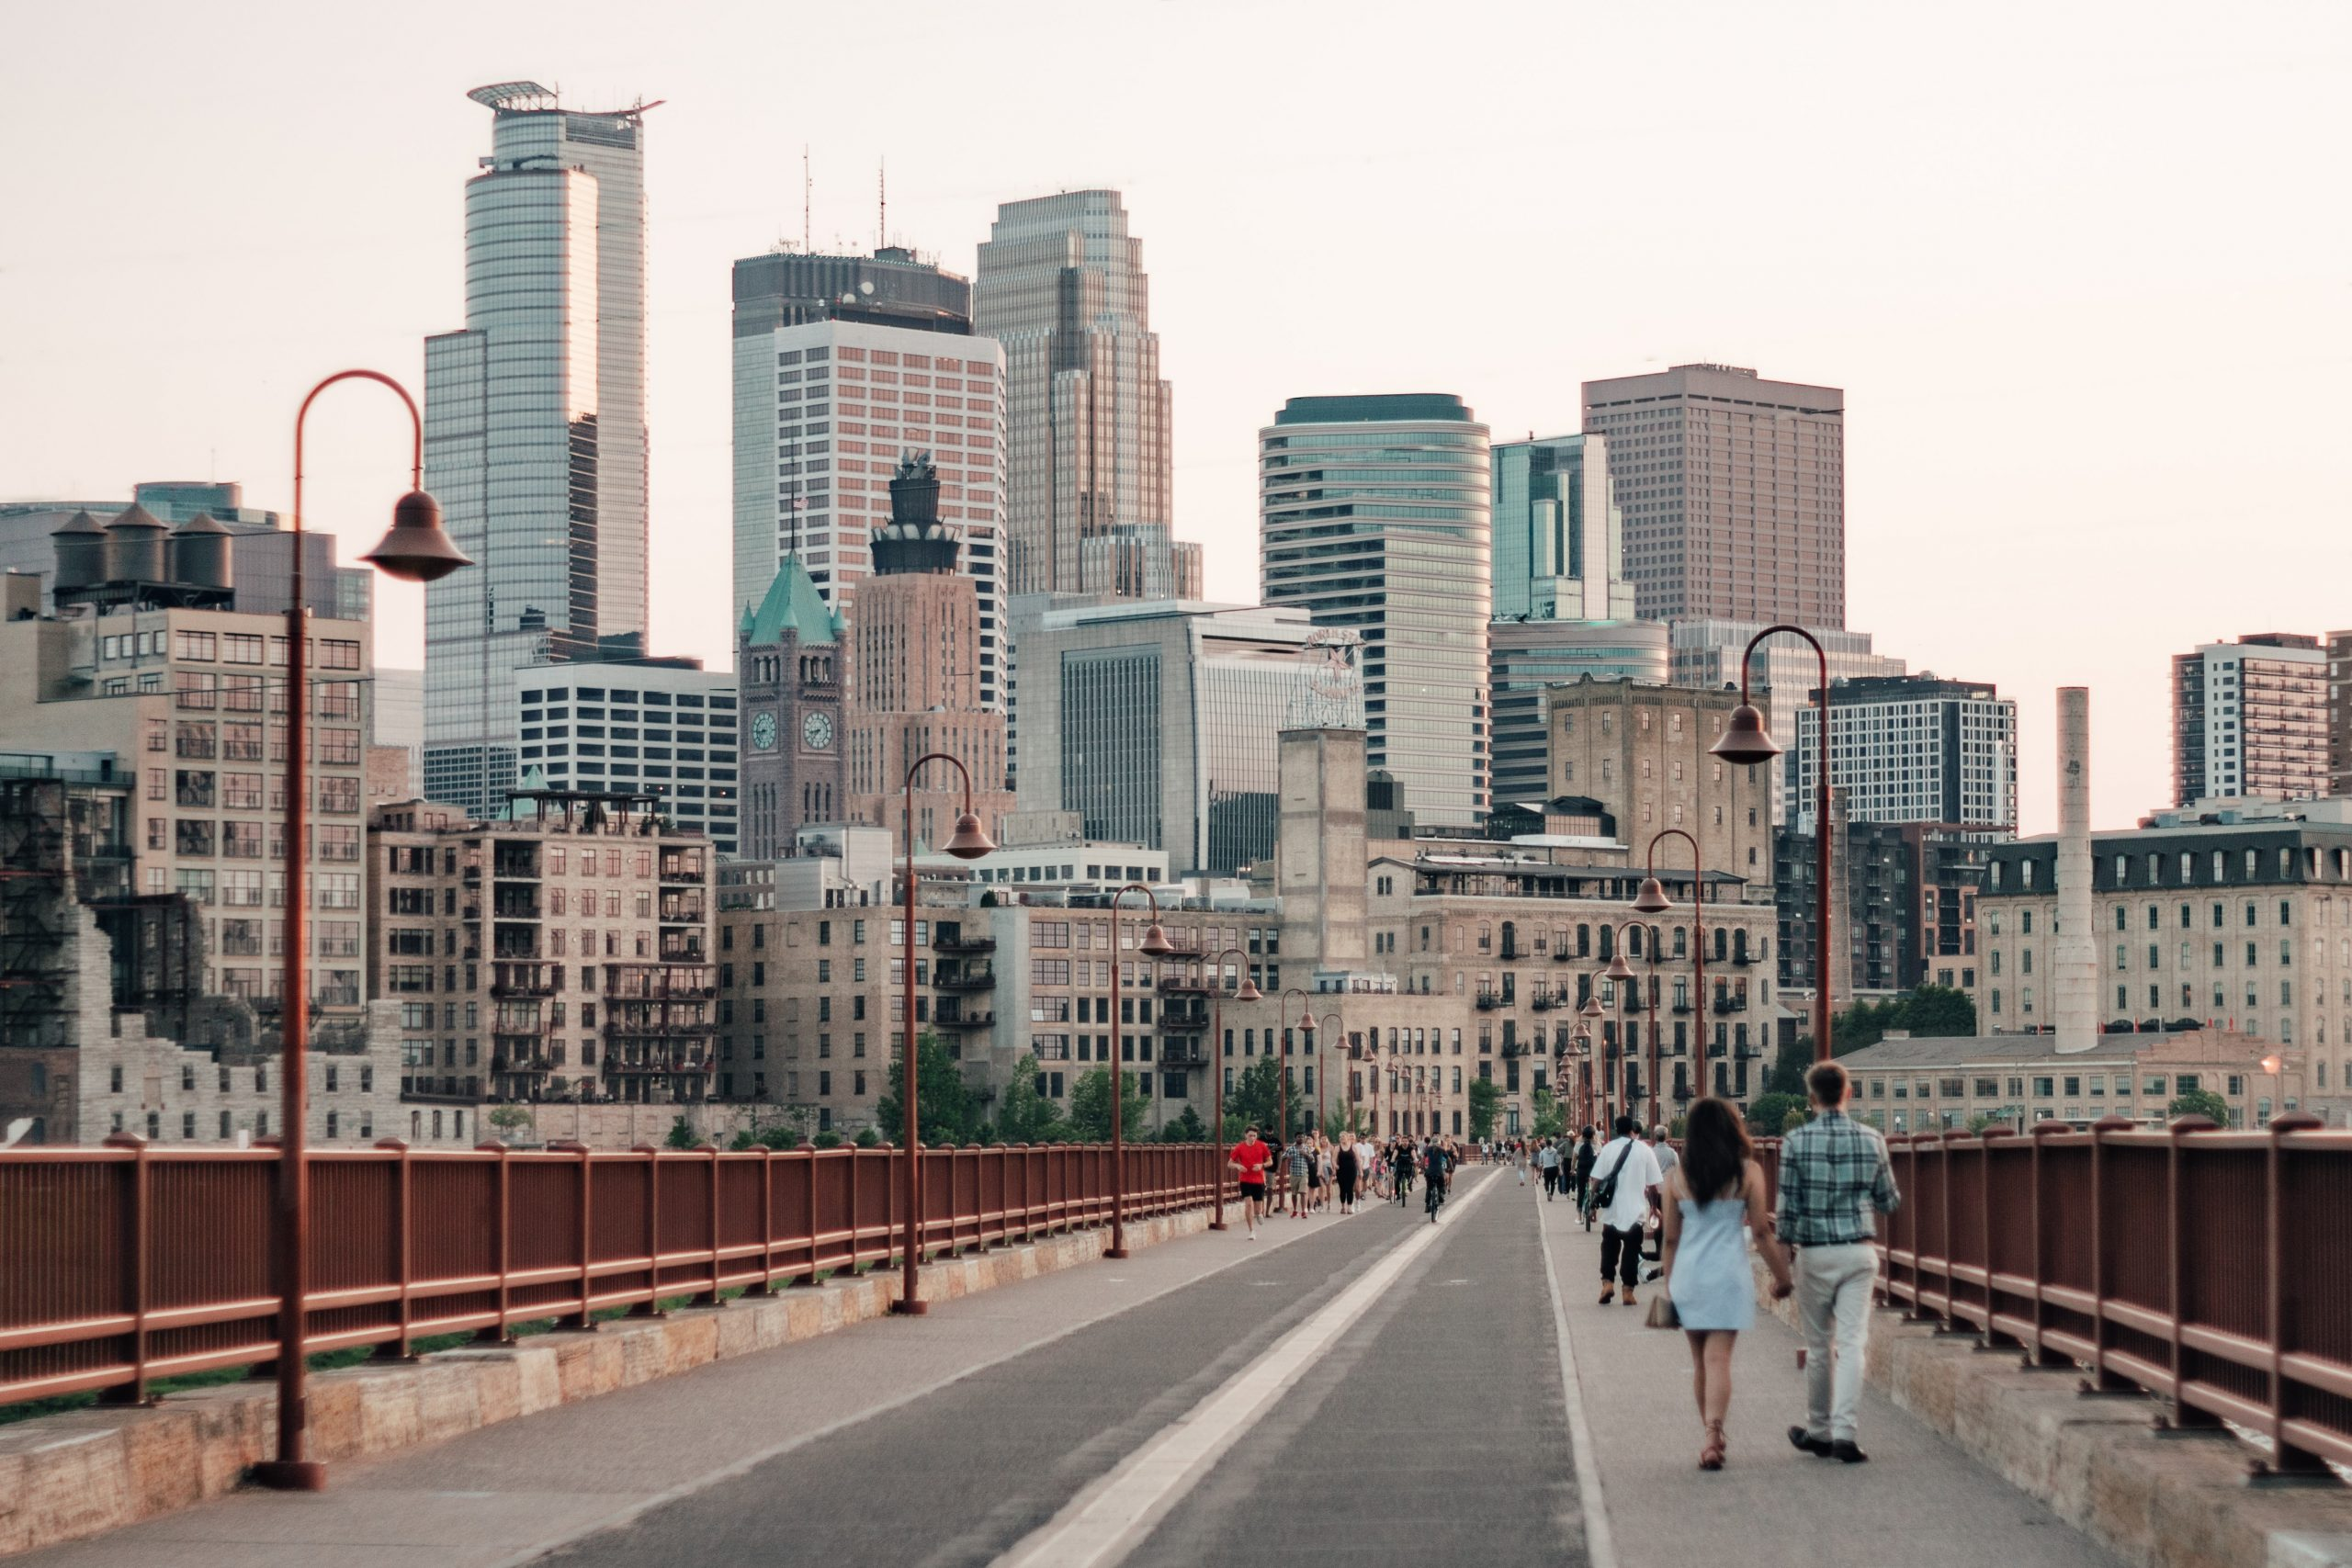 Easy commute from The Fenley to downtown Minneapolis